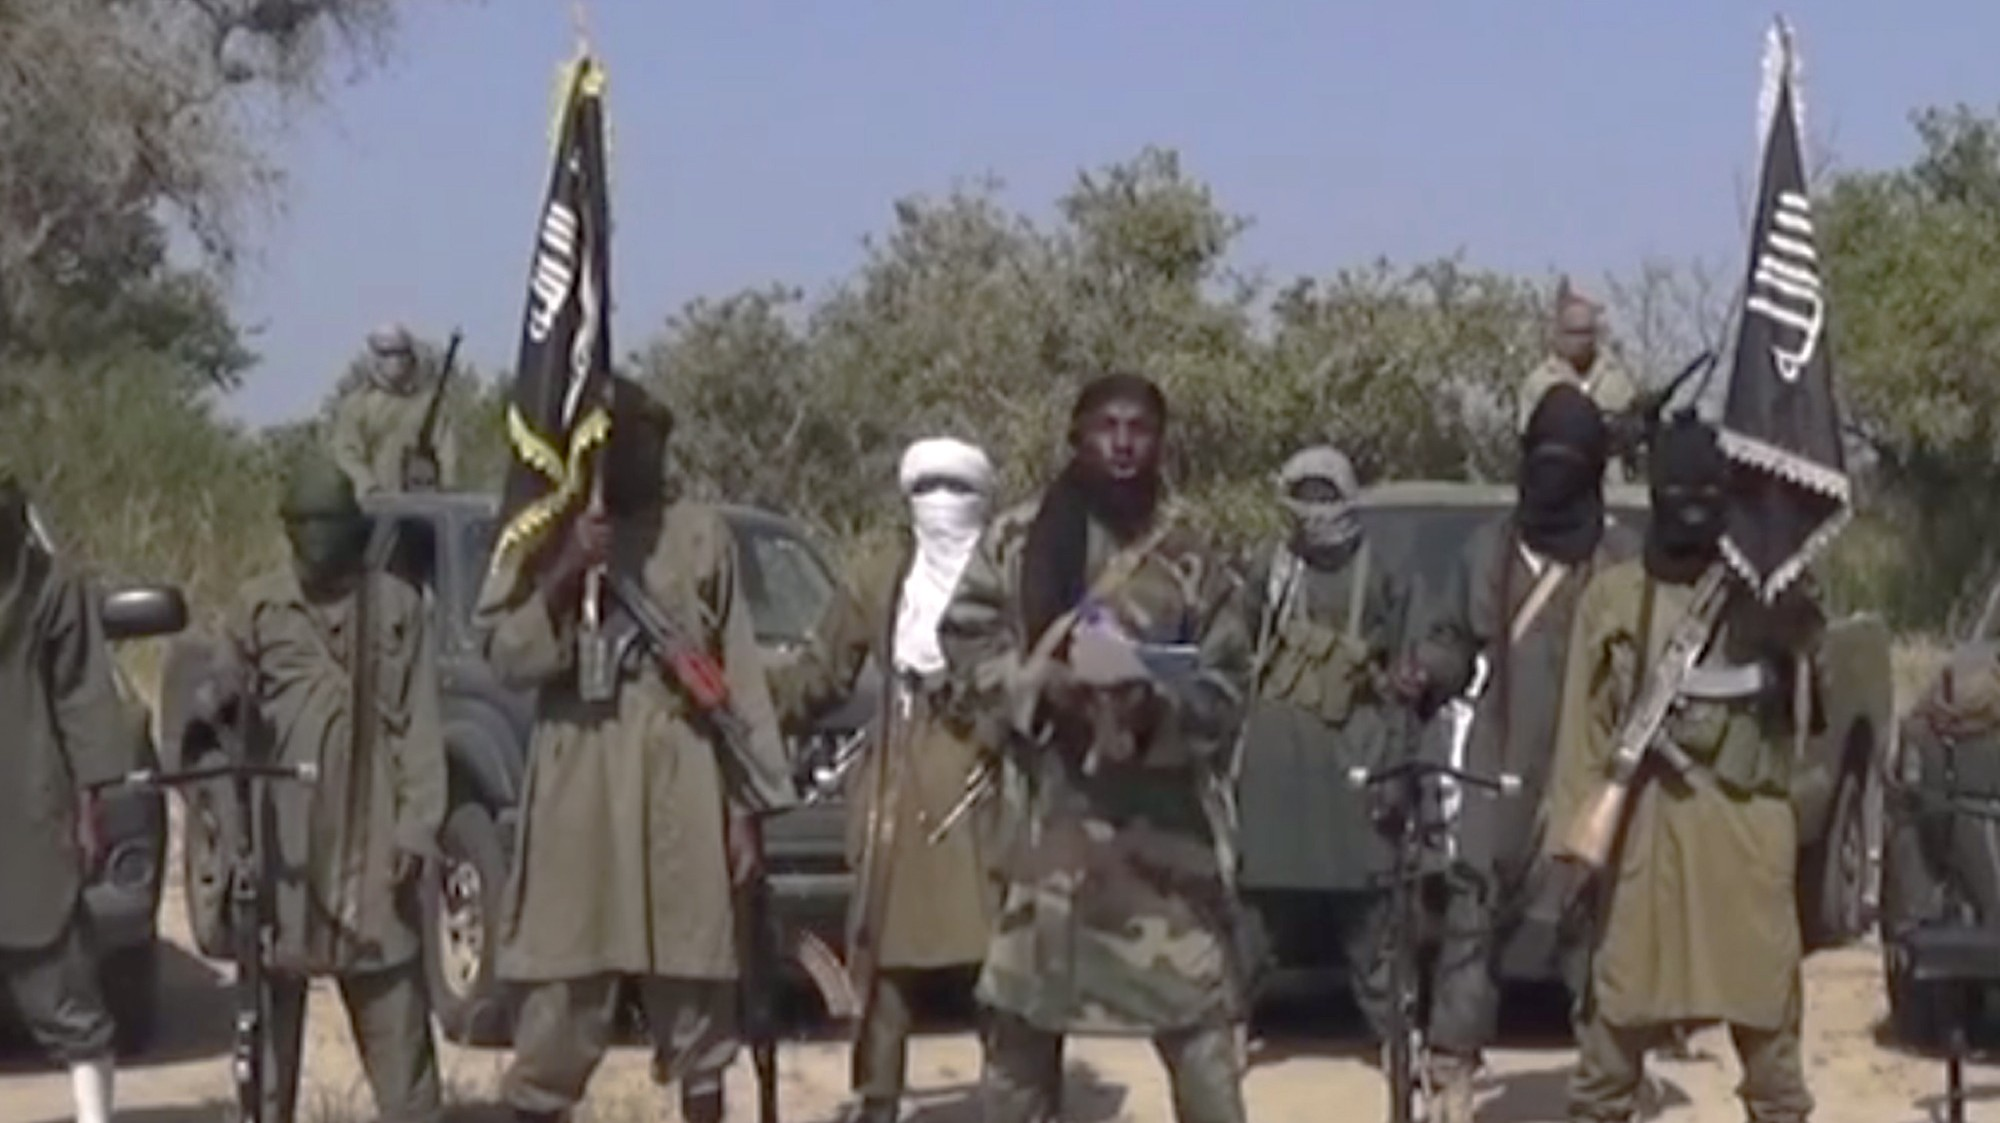 Boko Haram Gunmen Kidnap 40 Young Men In Nigeria